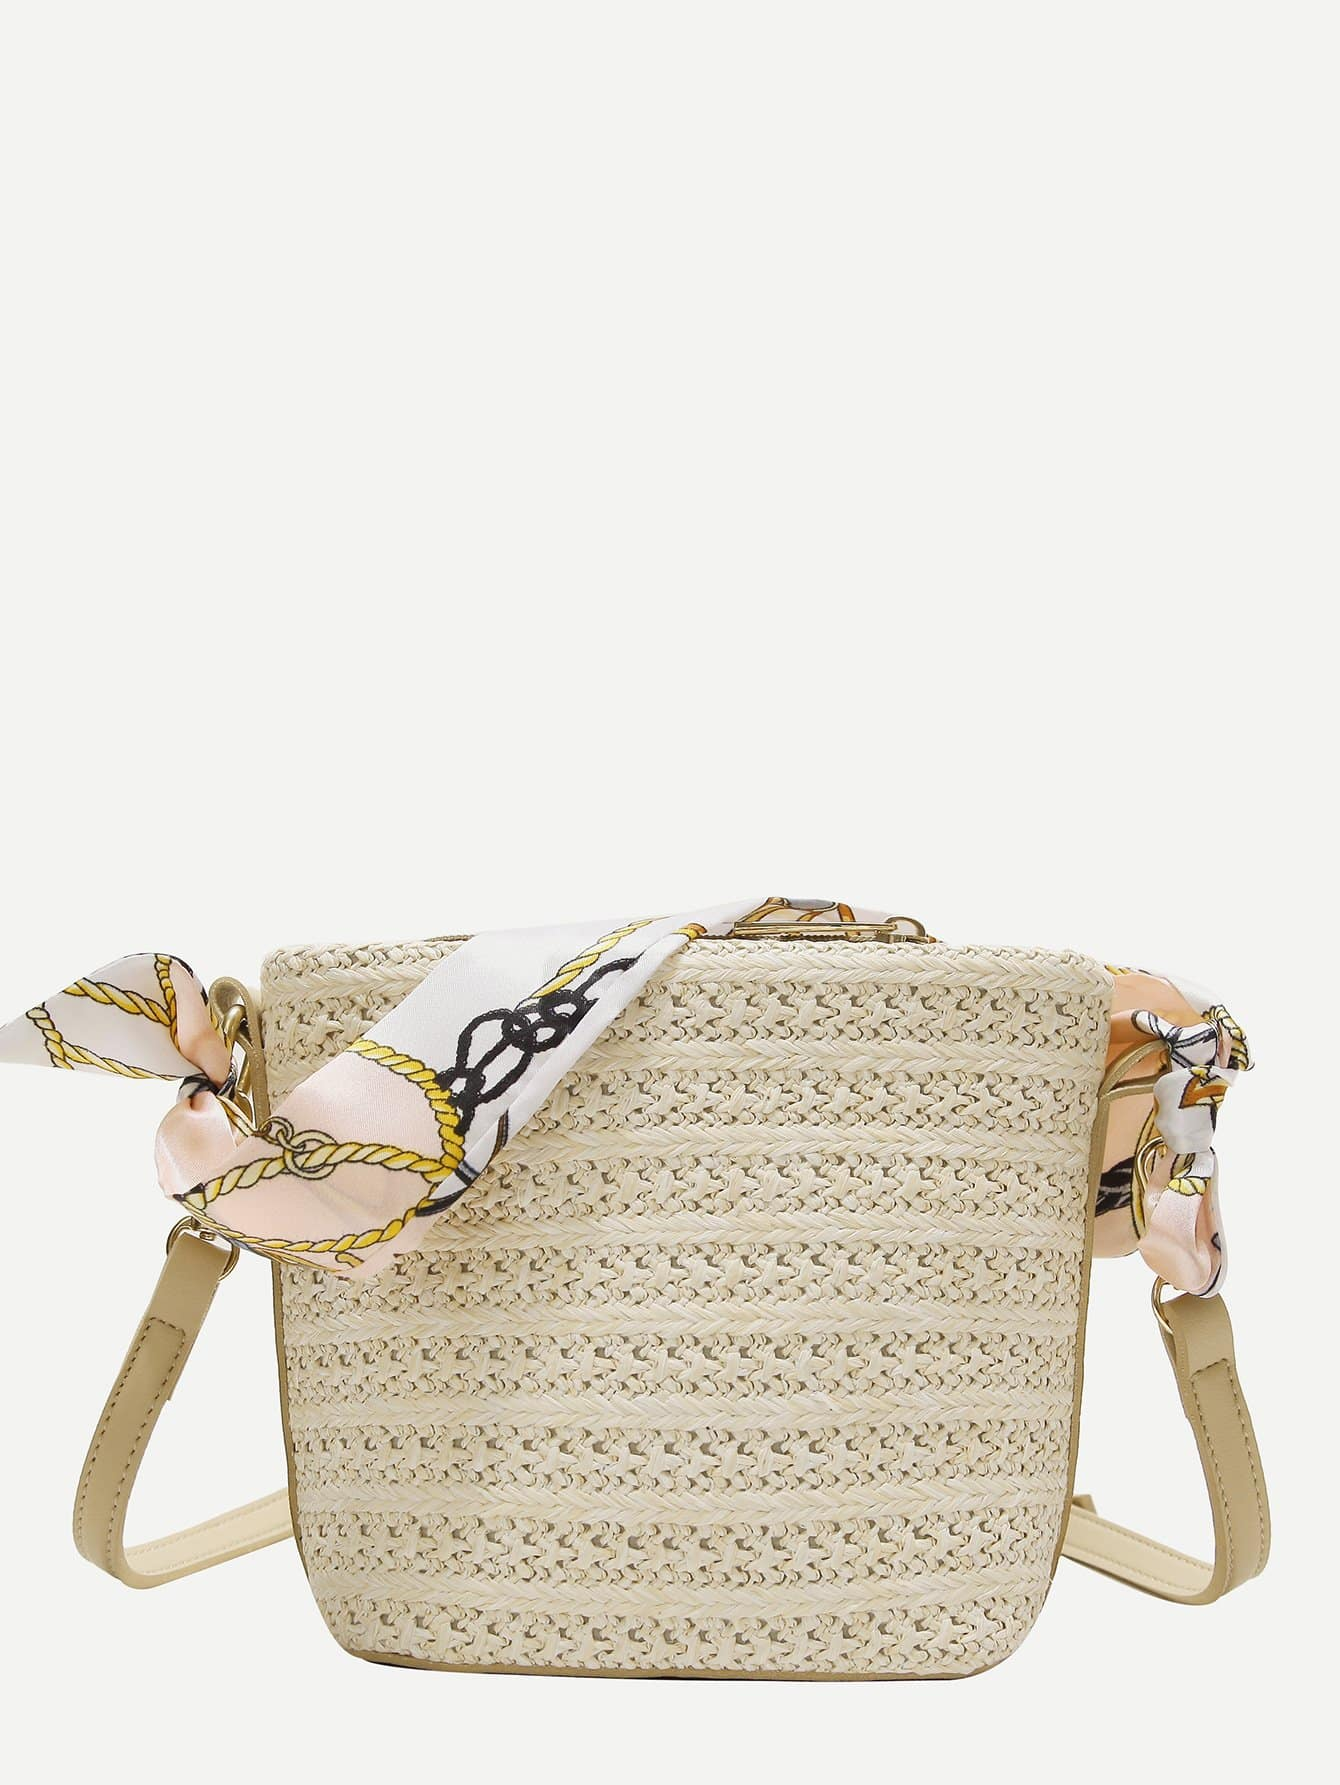 Twilly Scarf Decor Woven Shoulder Bag bow decor flower woven tote bag